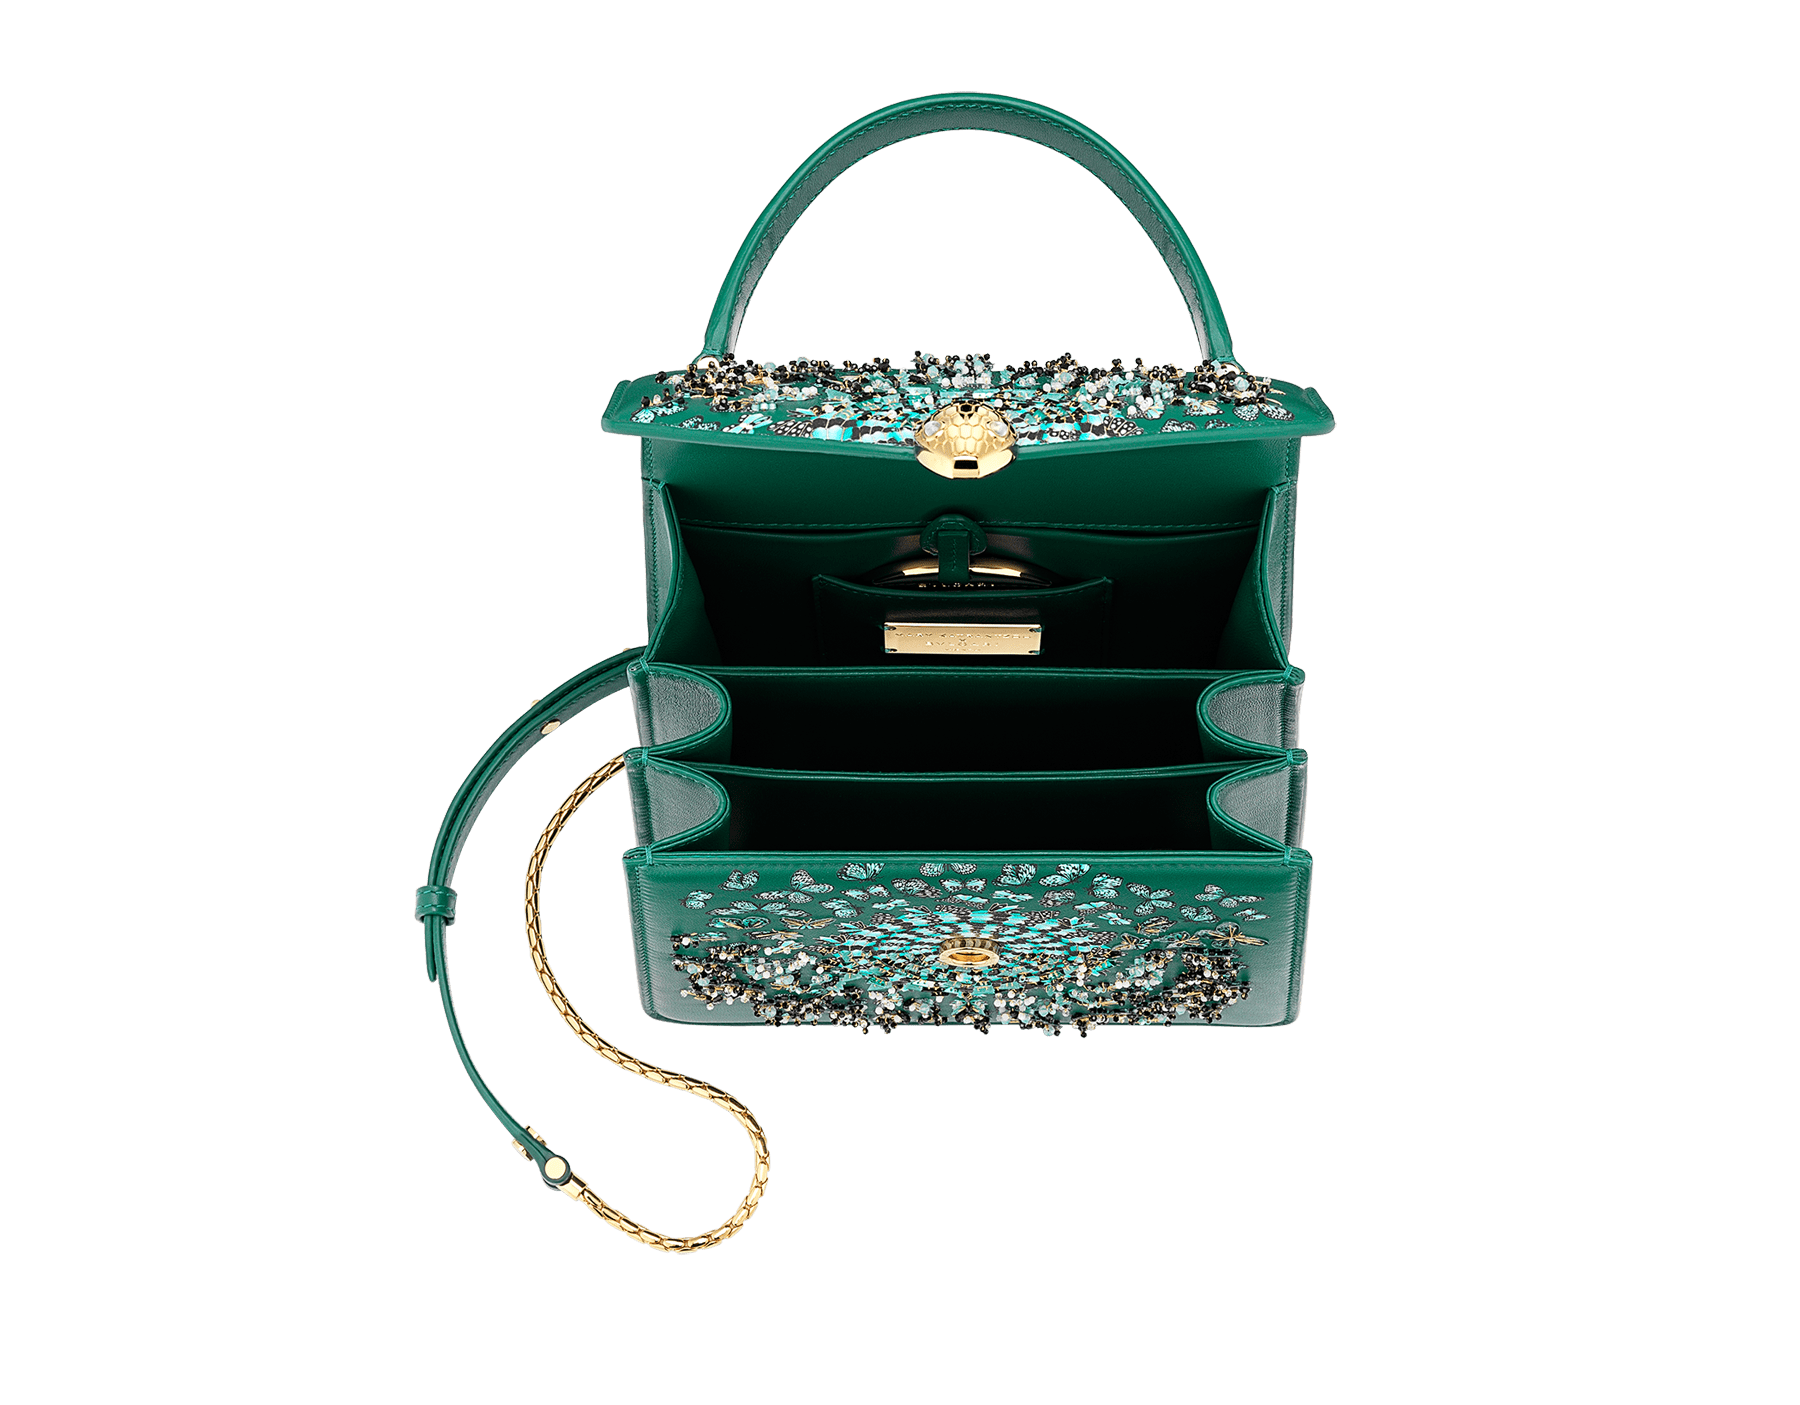 """Mary Katrantzou x Bvlgari"" top handle bag in black nappa leather, with black nappa leather inner lining. New Serpenti head closure in gold-plated brass, finished with seductive crystal eyes. Special Edition. MK-Bejewelled image 4"